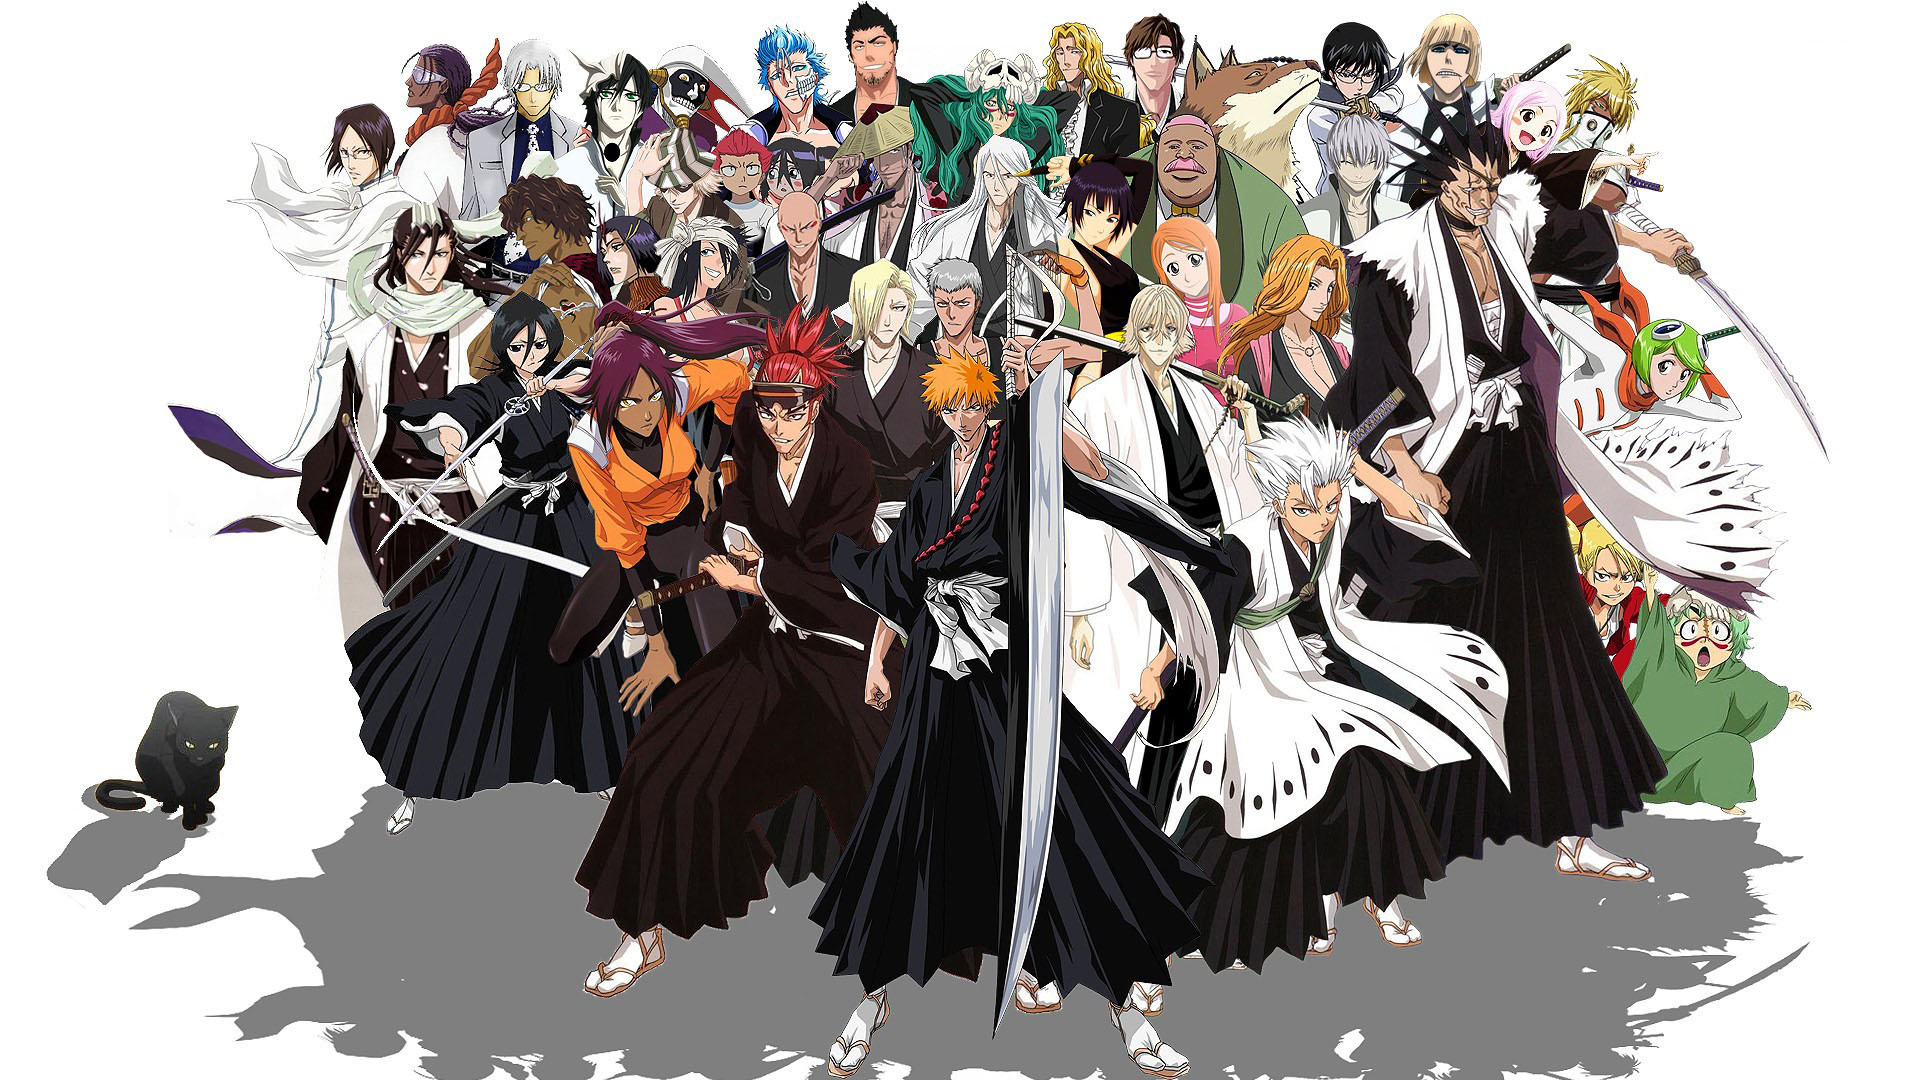 How 'Bleach' Turned Out To Be The Kobe Bryant Of Anime | Inverse